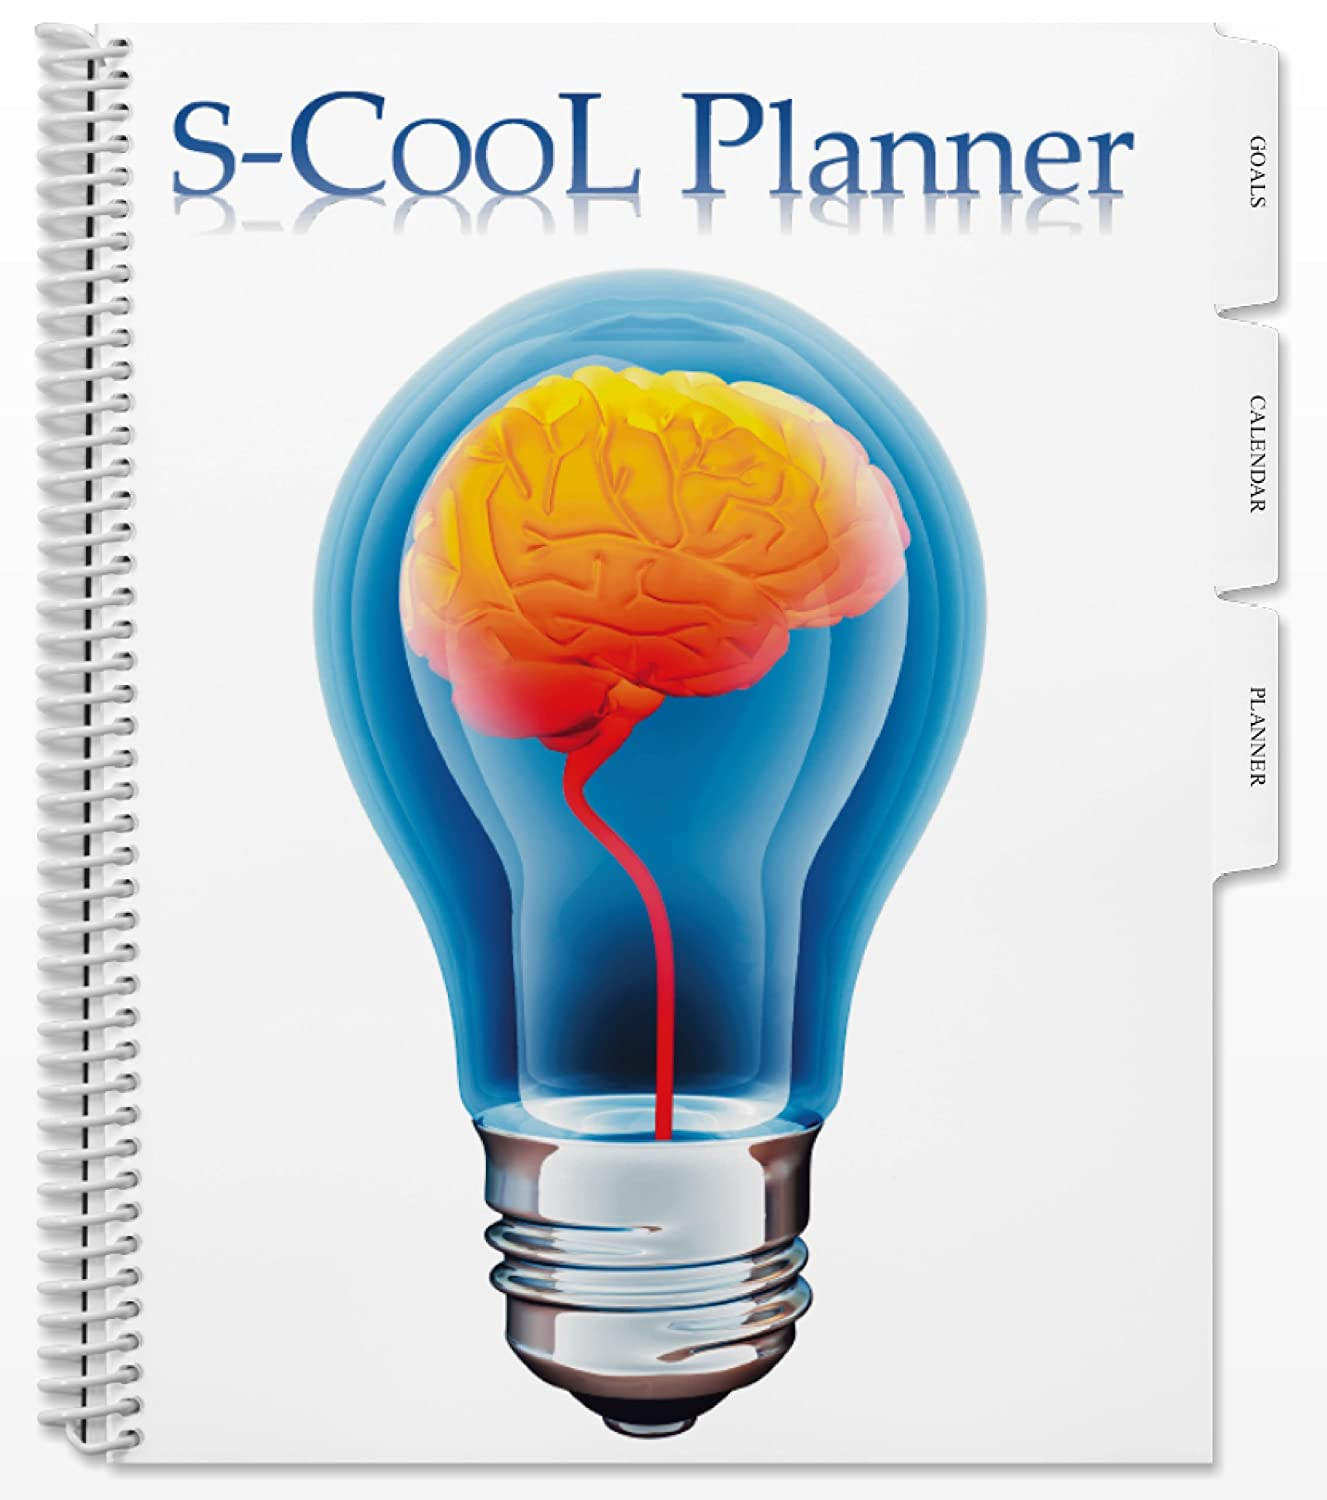 Academic School Planner (+) Calendar for 2013 2014